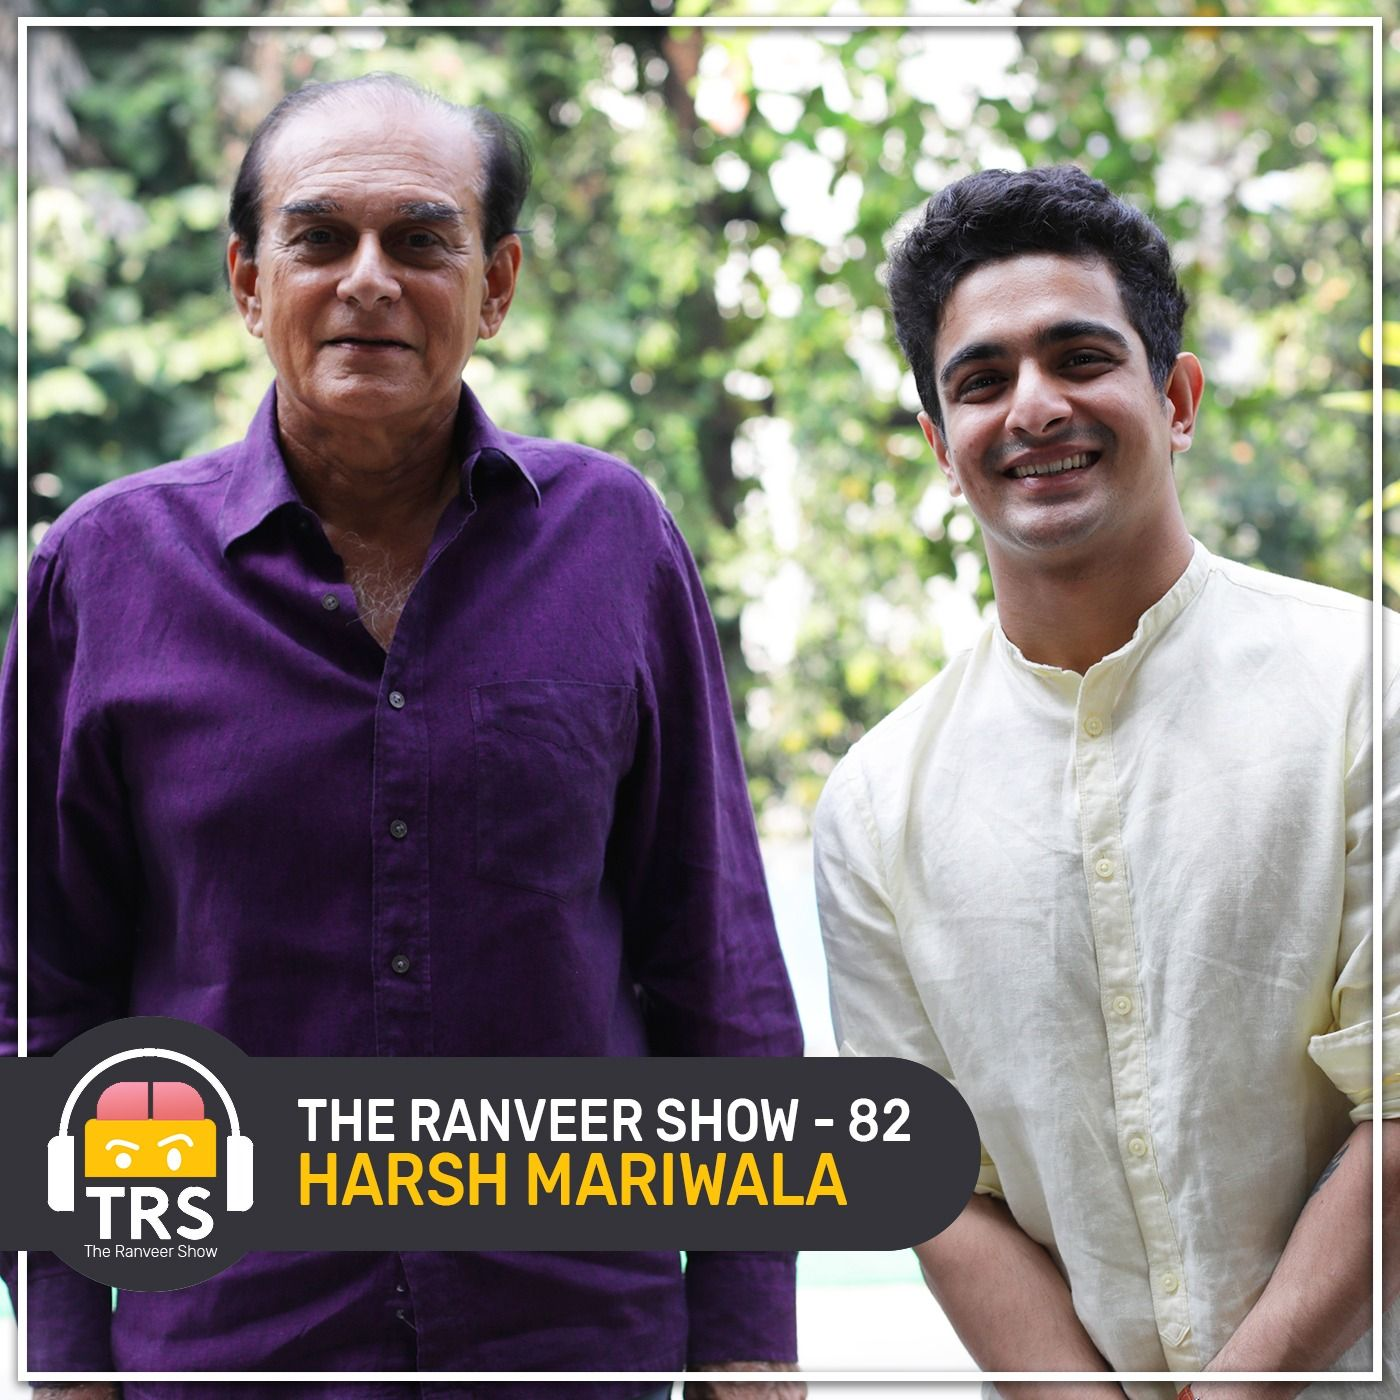 Conversation With A Billionaire - The INSPIRING Harsh Mariwala Story | The Ranveer Show 82